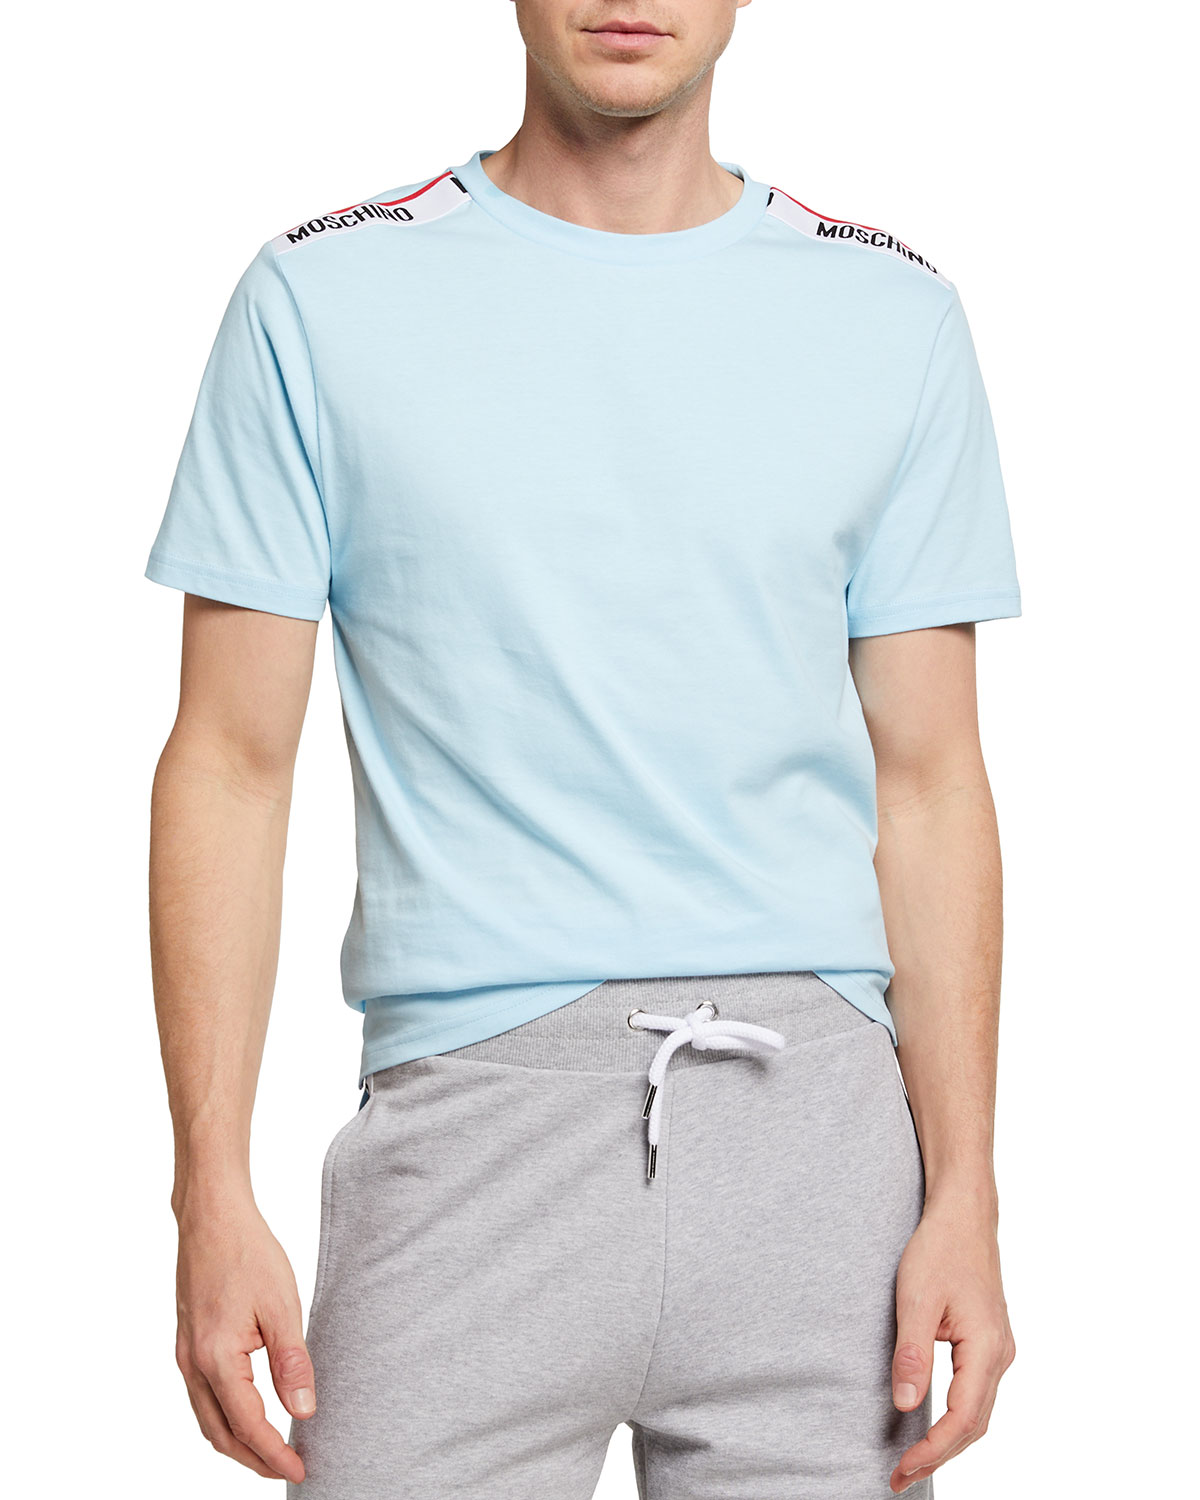 Moschino MEN'S T-SHIRT WITH SHOULDER TAPING